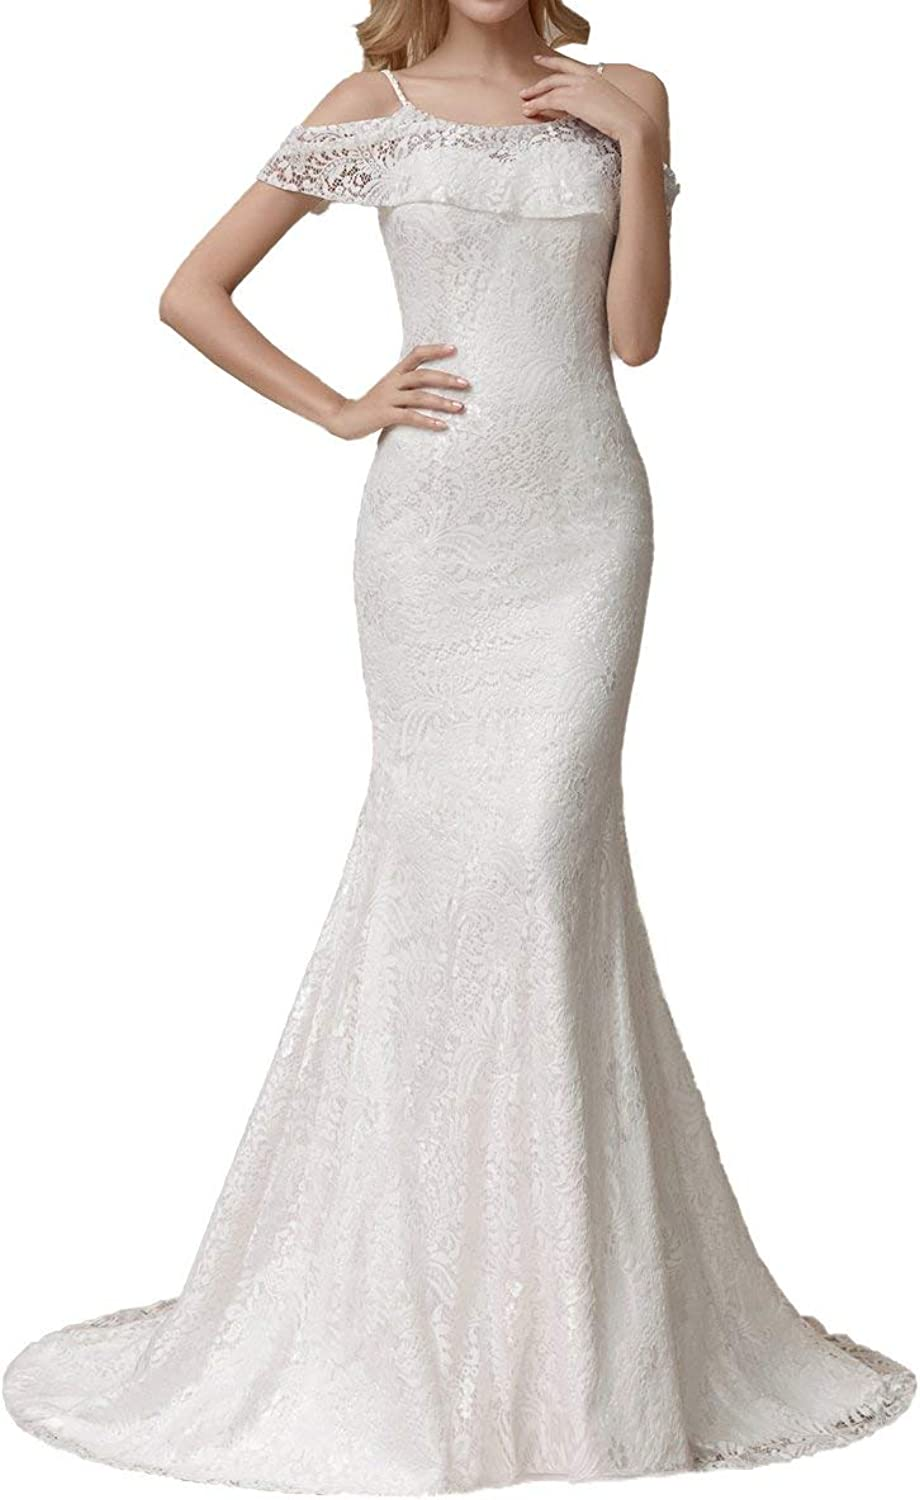 ICCELY Women's Mermaid Spaghetti Straps Lace Sweep Brush Train Wedding Dresses for Bride